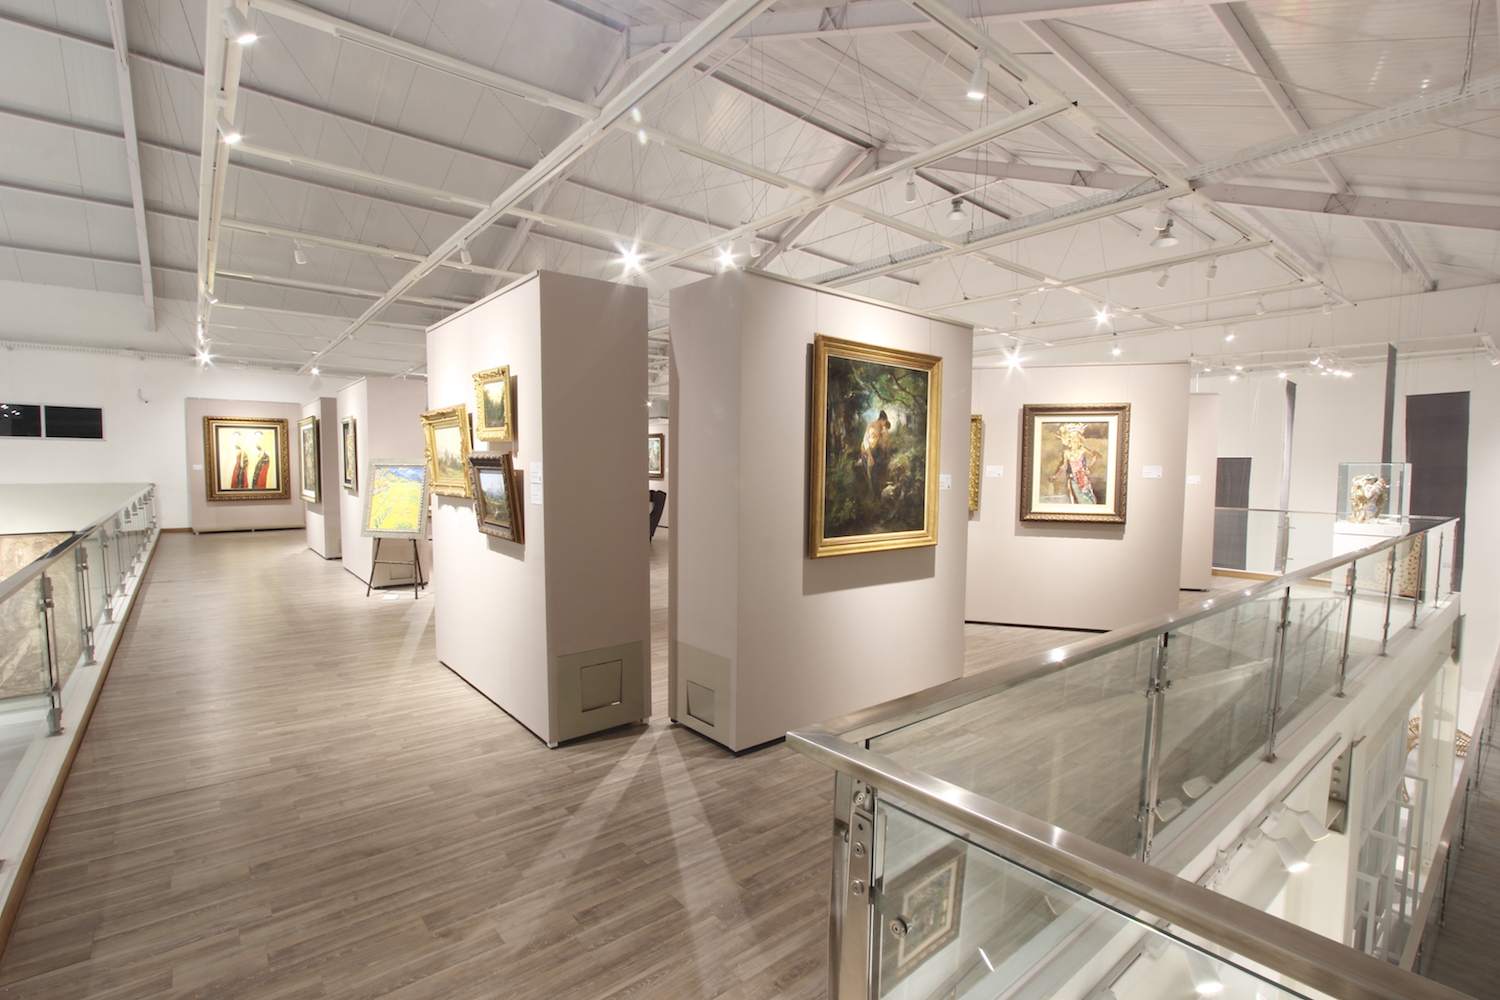 Works from left to right by Srihadi Soedarsono, Theo Meier, Wilhelm Ch. Constant Bleckmann, Maurits Van Den Kerkhoff, Jacob Dirk Van Herwerden, Mari Ten Kate, and Roland Strasser. Courtesy of Tumurun Private Museum.